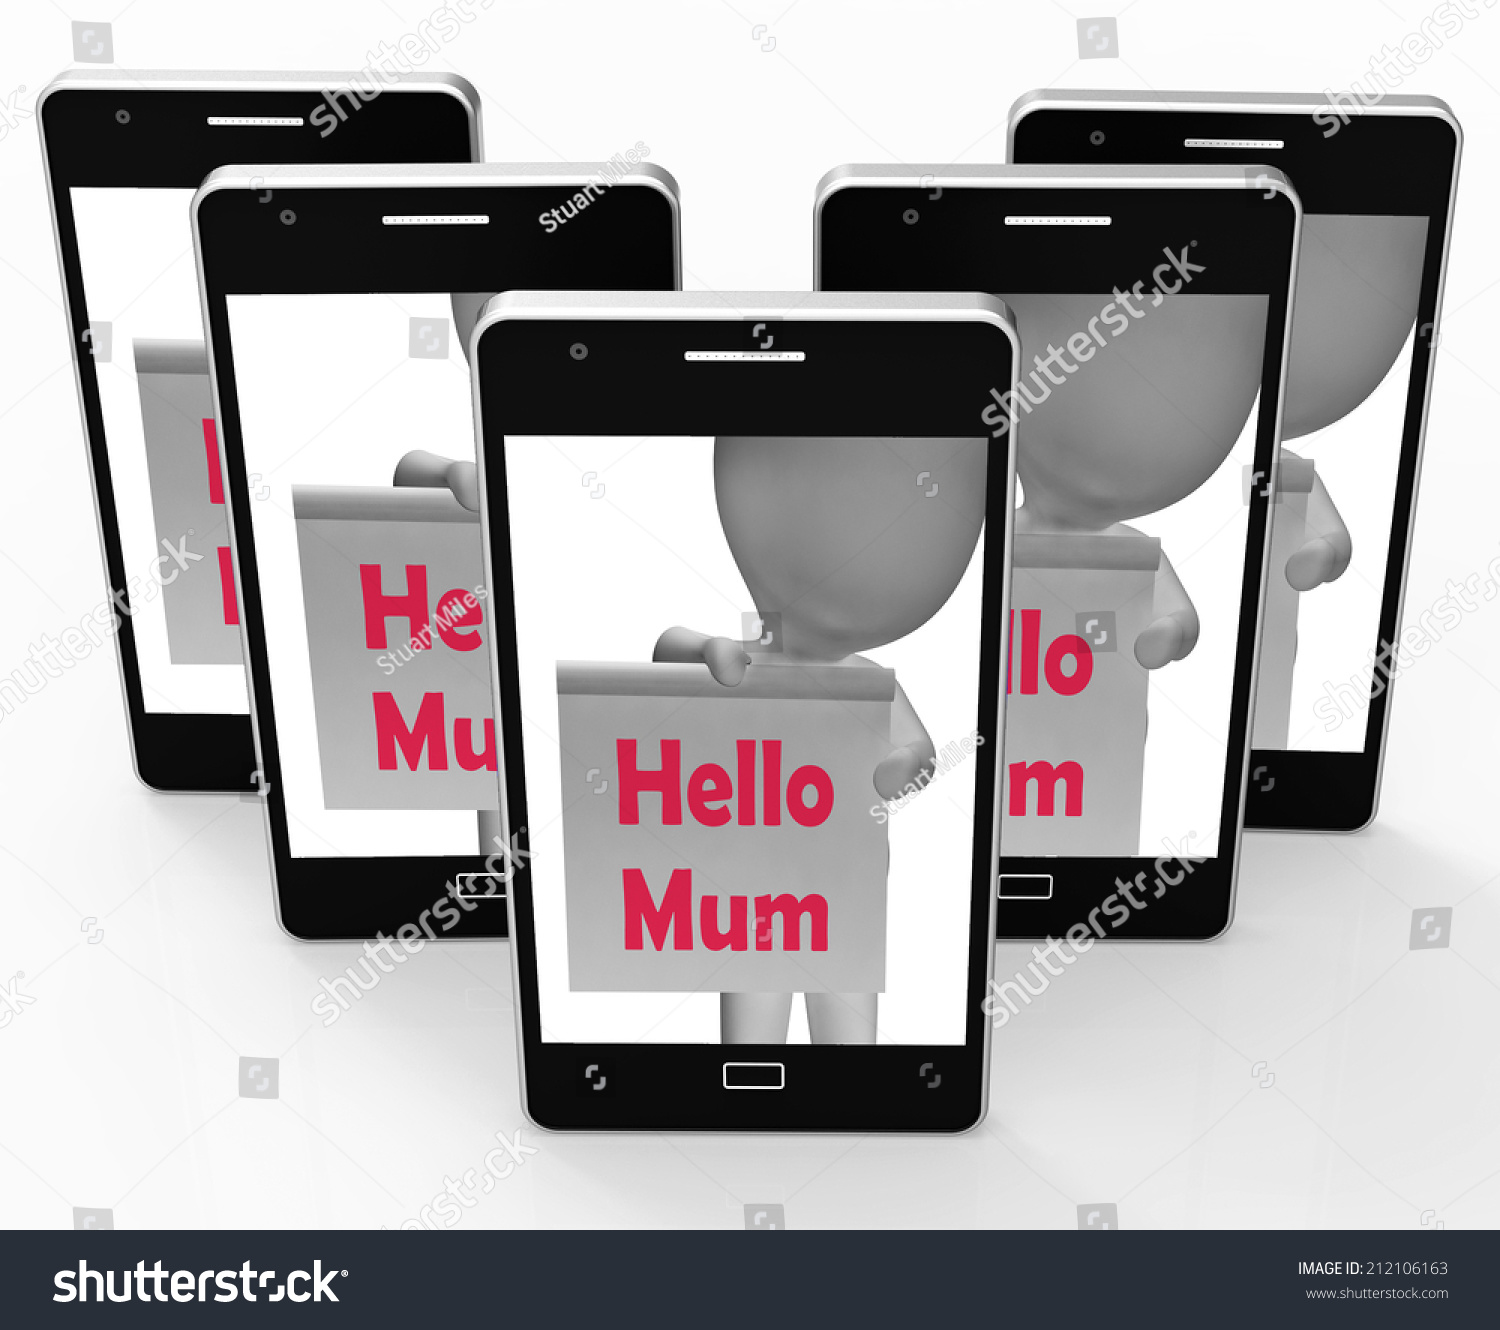 Hello Mum Sign Meaning Greetings Mother Stock Illustration 212106163